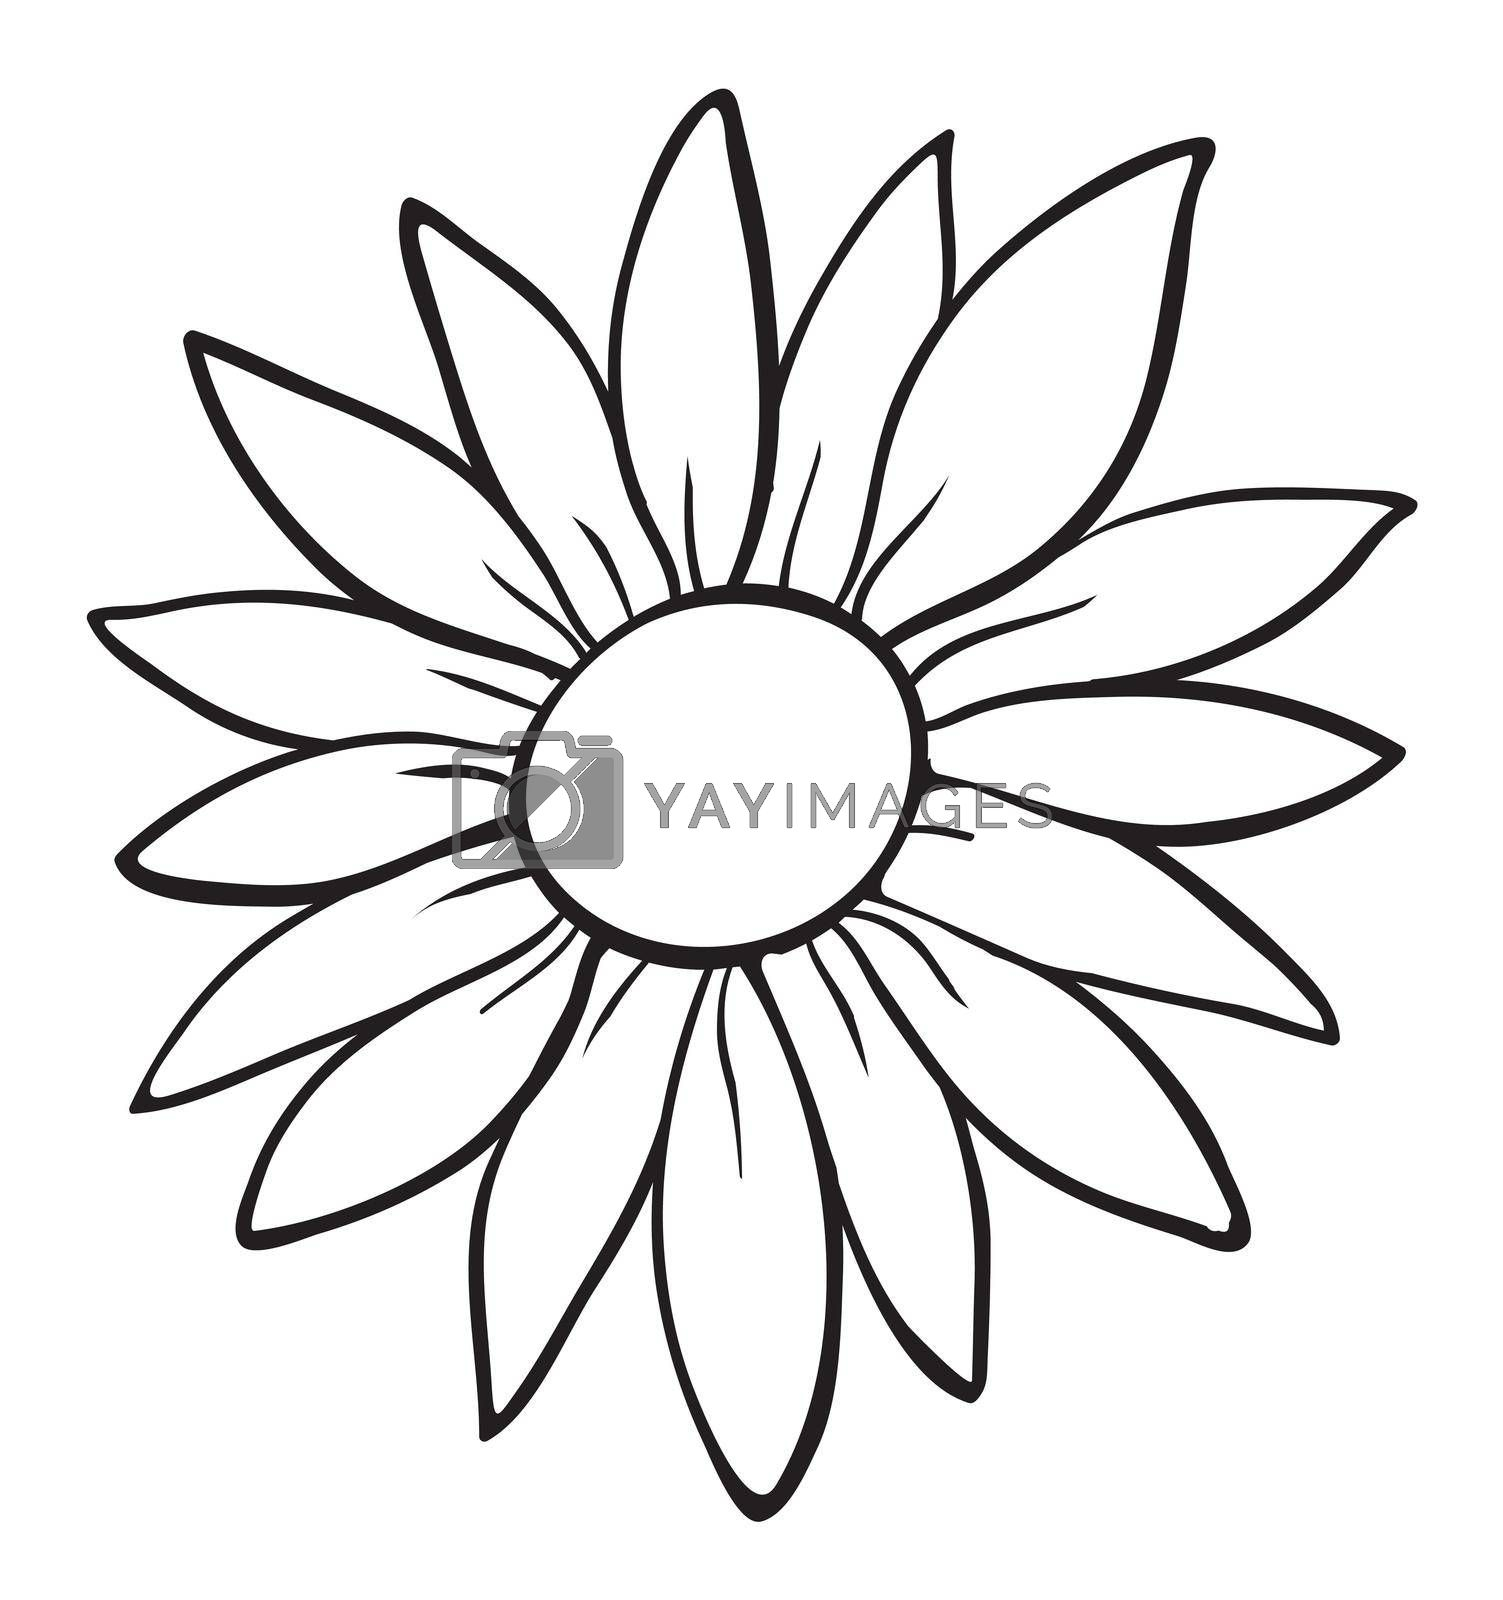 detailed illustration of a flower sketch on white